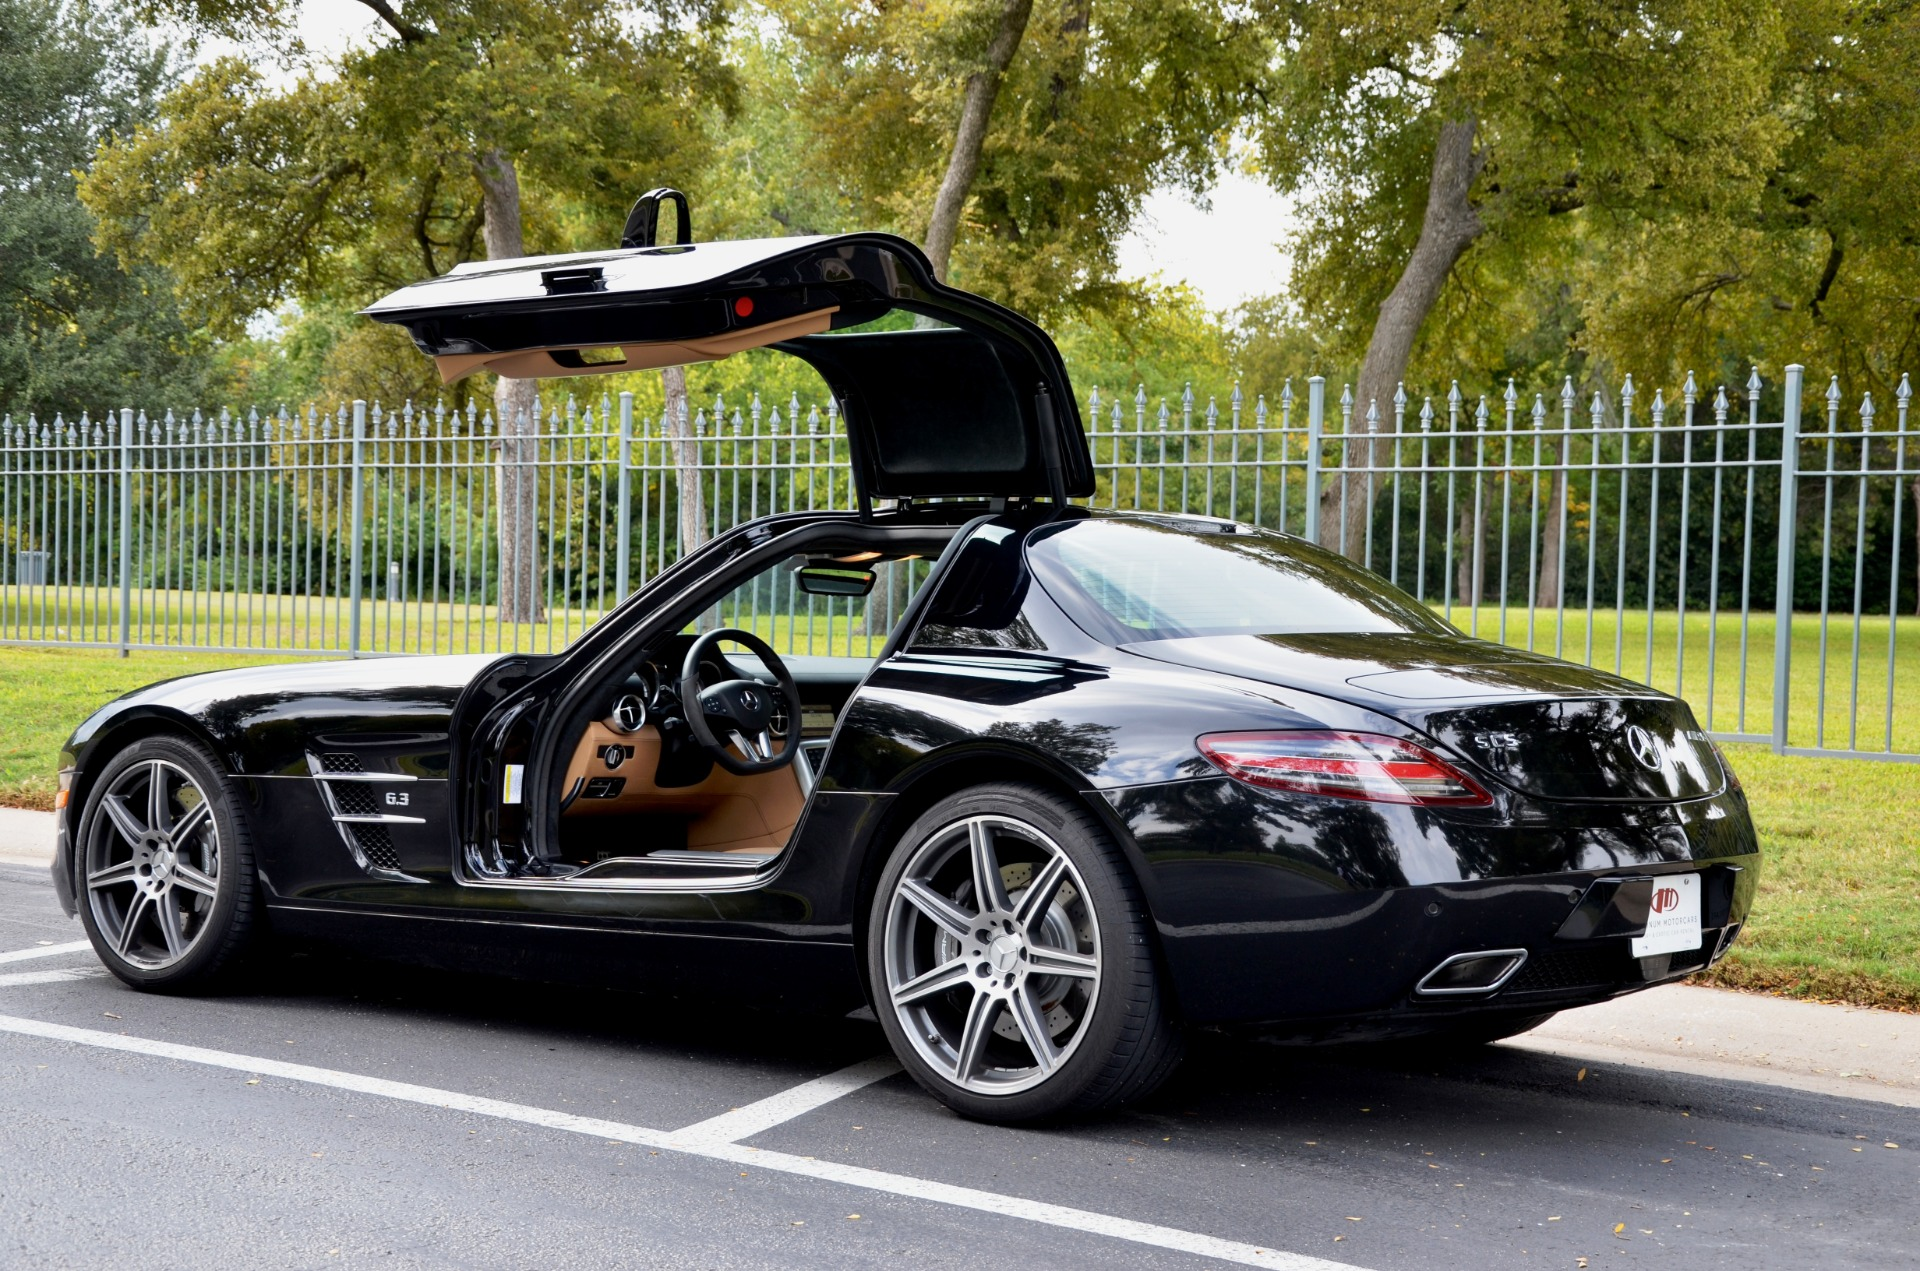 2012 mercedes benz sls amg stock 12sls for sale near. Black Bedroom Furniture Sets. Home Design Ideas